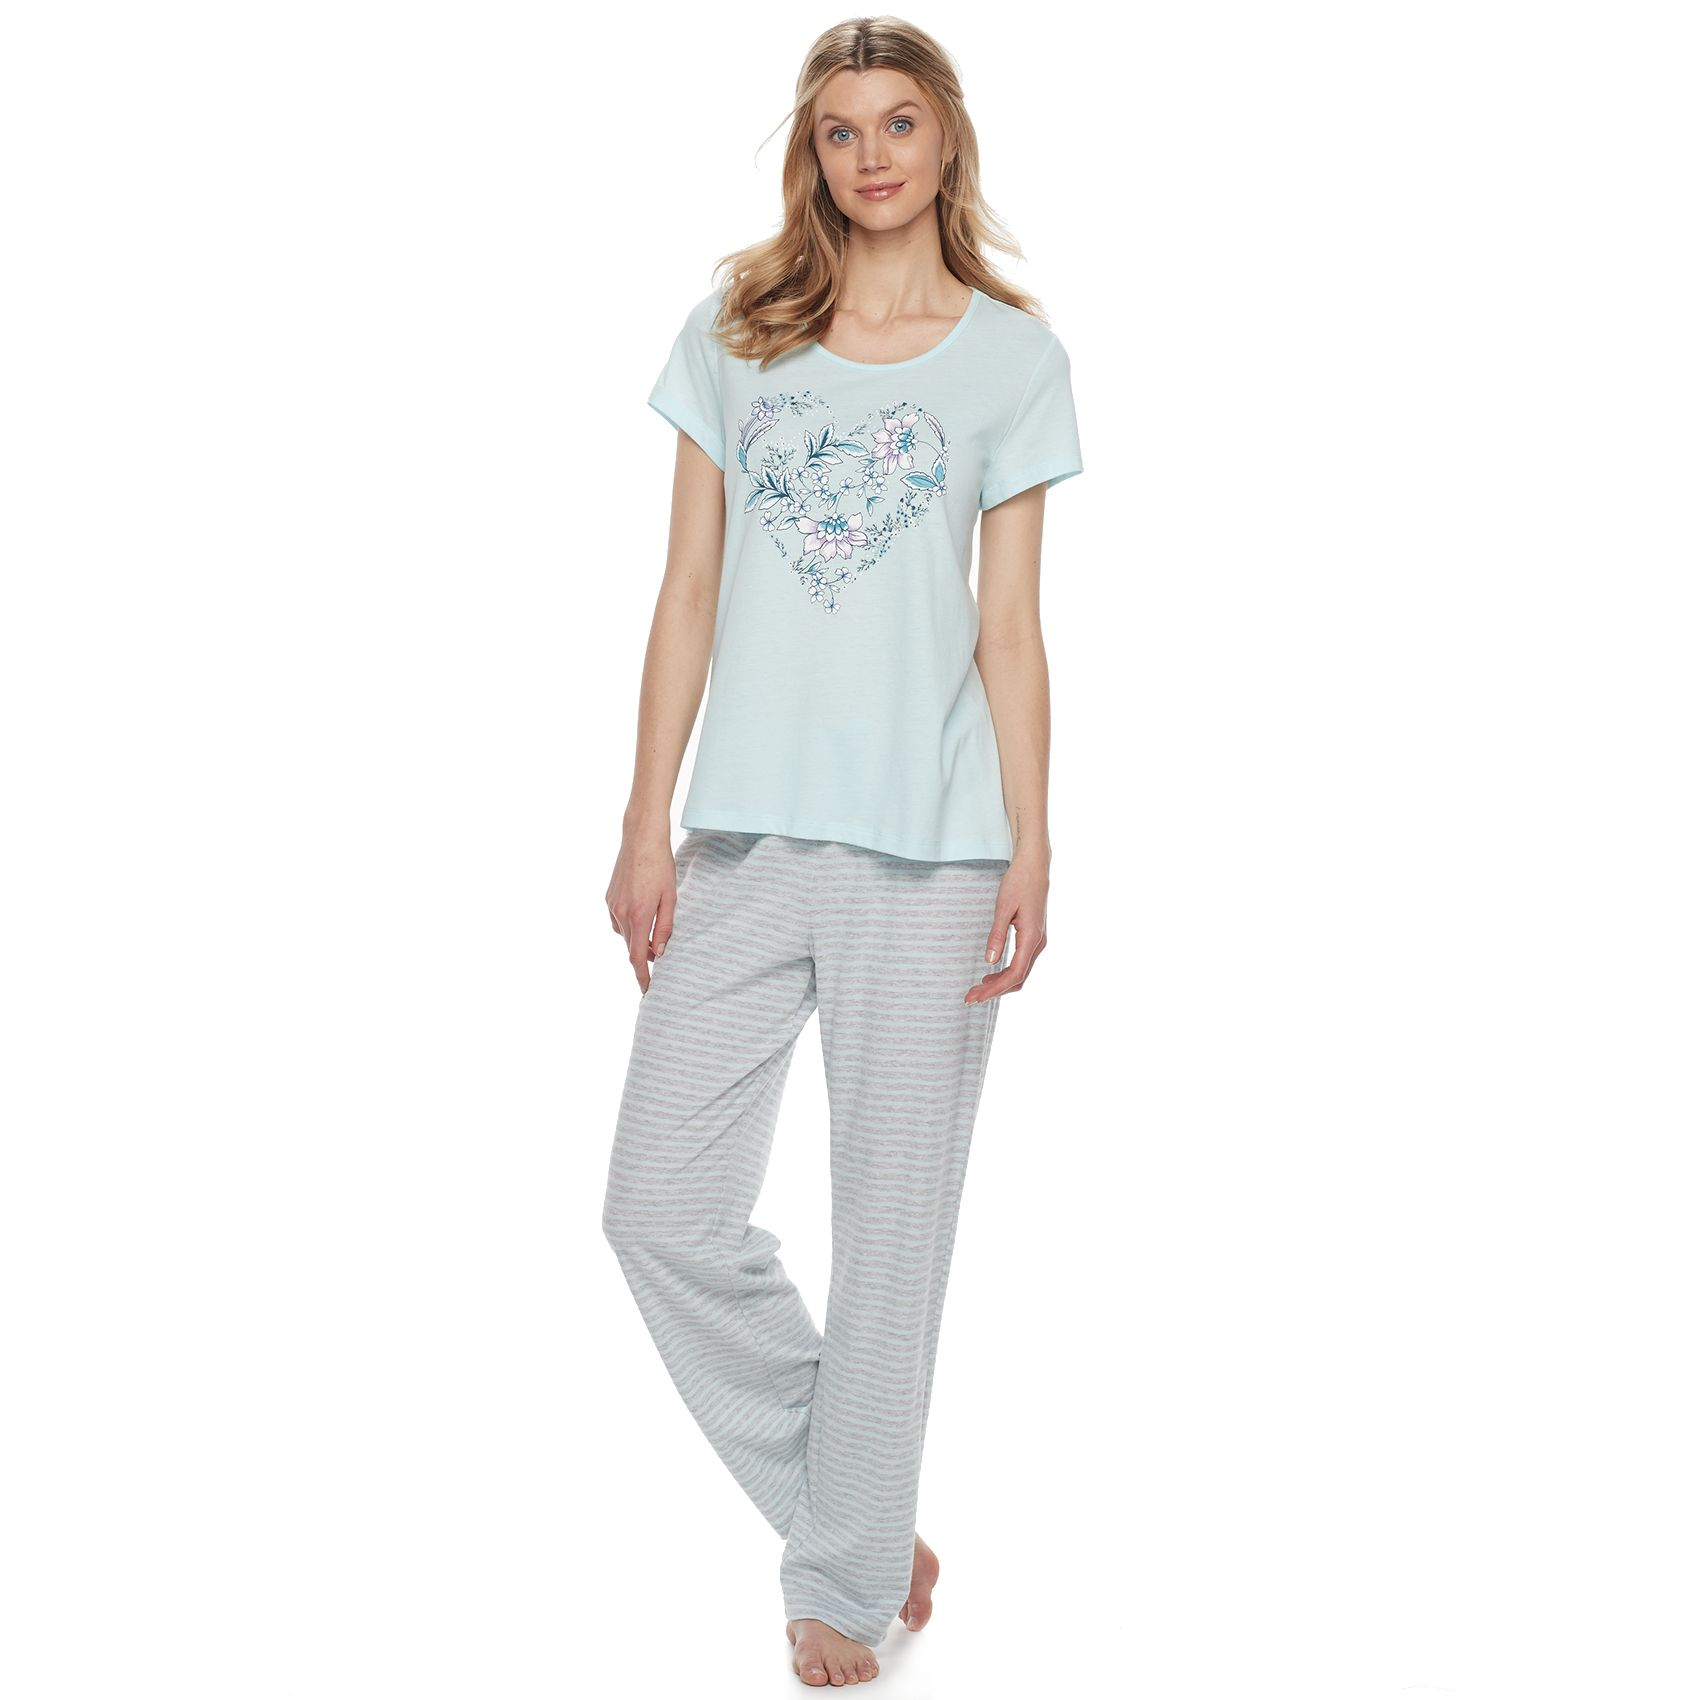 2960816_Blue?wid=240&hei=240&op_sharpen=1 womens pajamas, robes & sleepwear kohl's,Womens Underwear Or Night Clothes 8 Letters